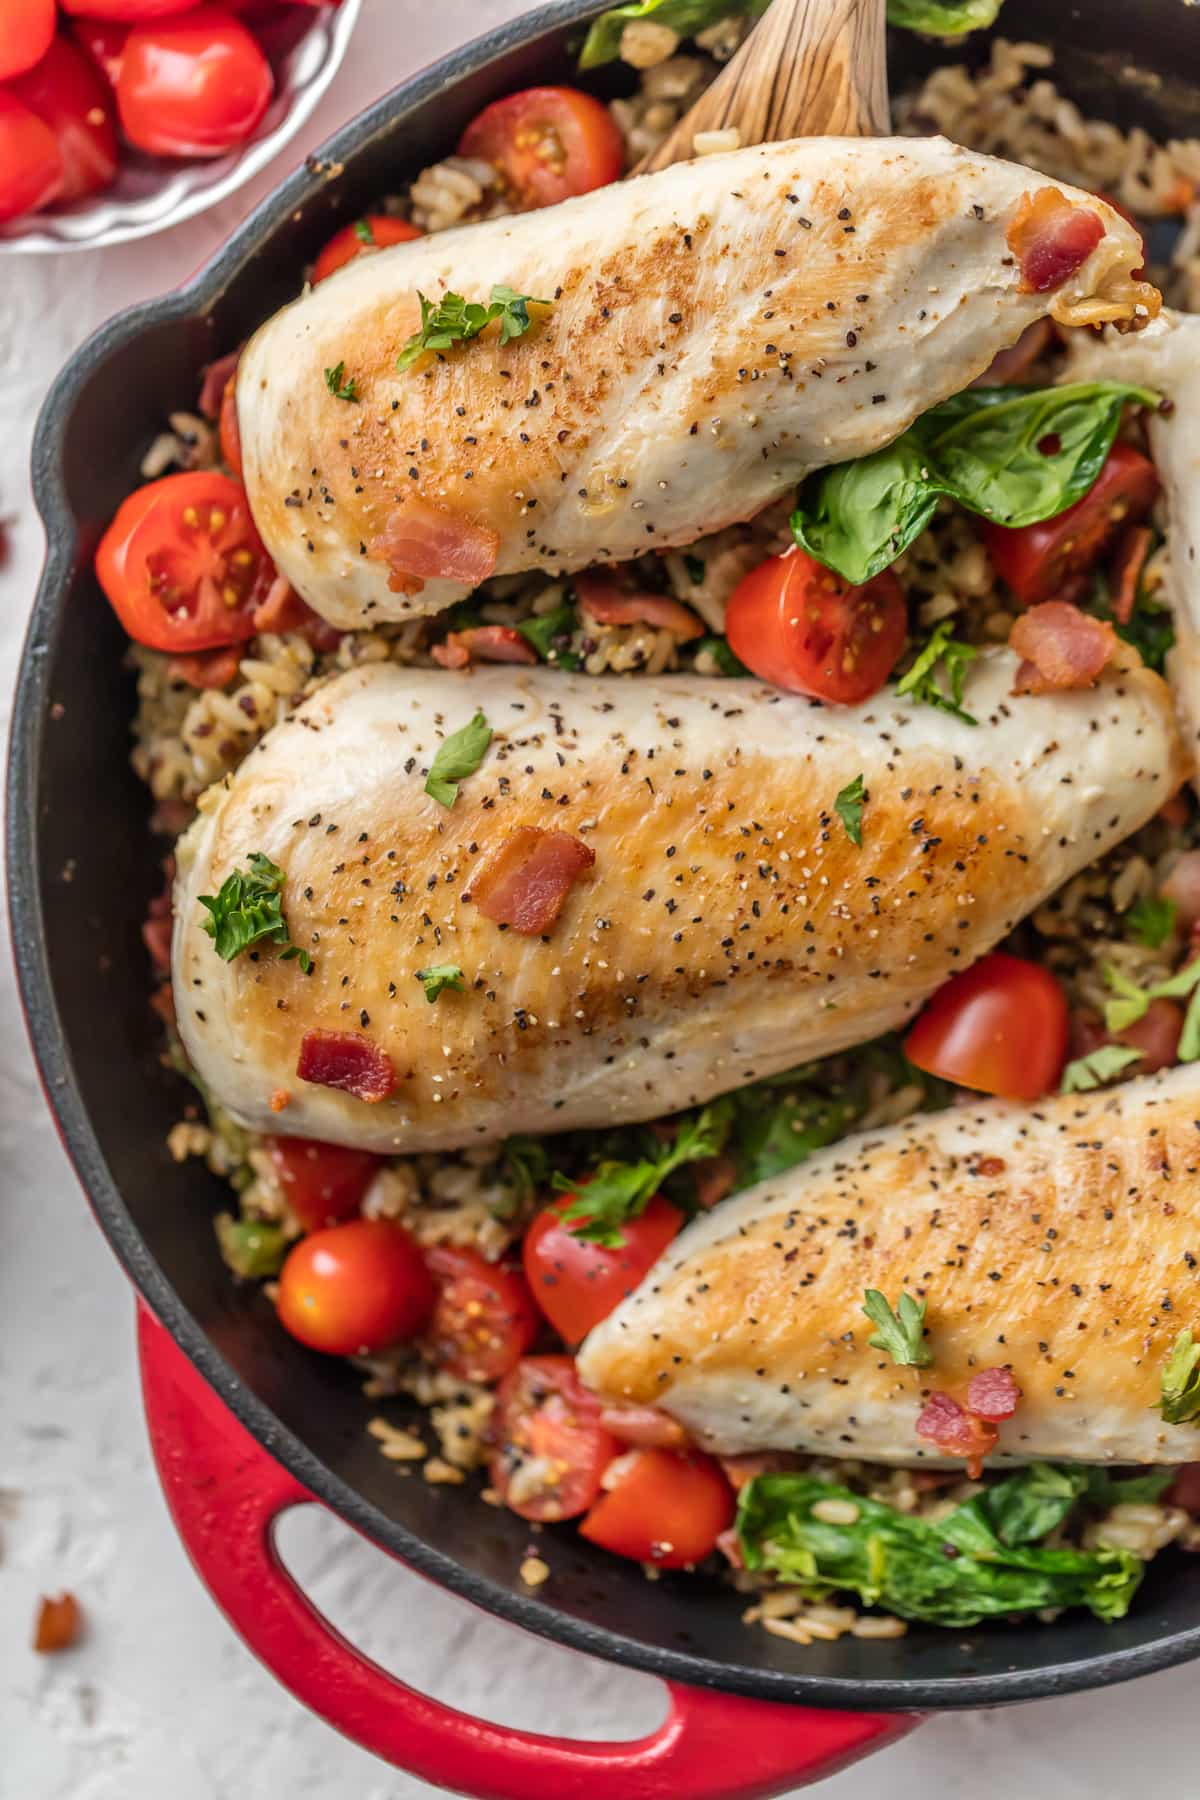 SKILLET BLT CHICKEN AND RICE is the perfect one pan meal to feed the family! Loaded with garlic, chicken, bacon, tomatoes, spinach, and brown rice & quinoa! Totally delicious and SO EASY!